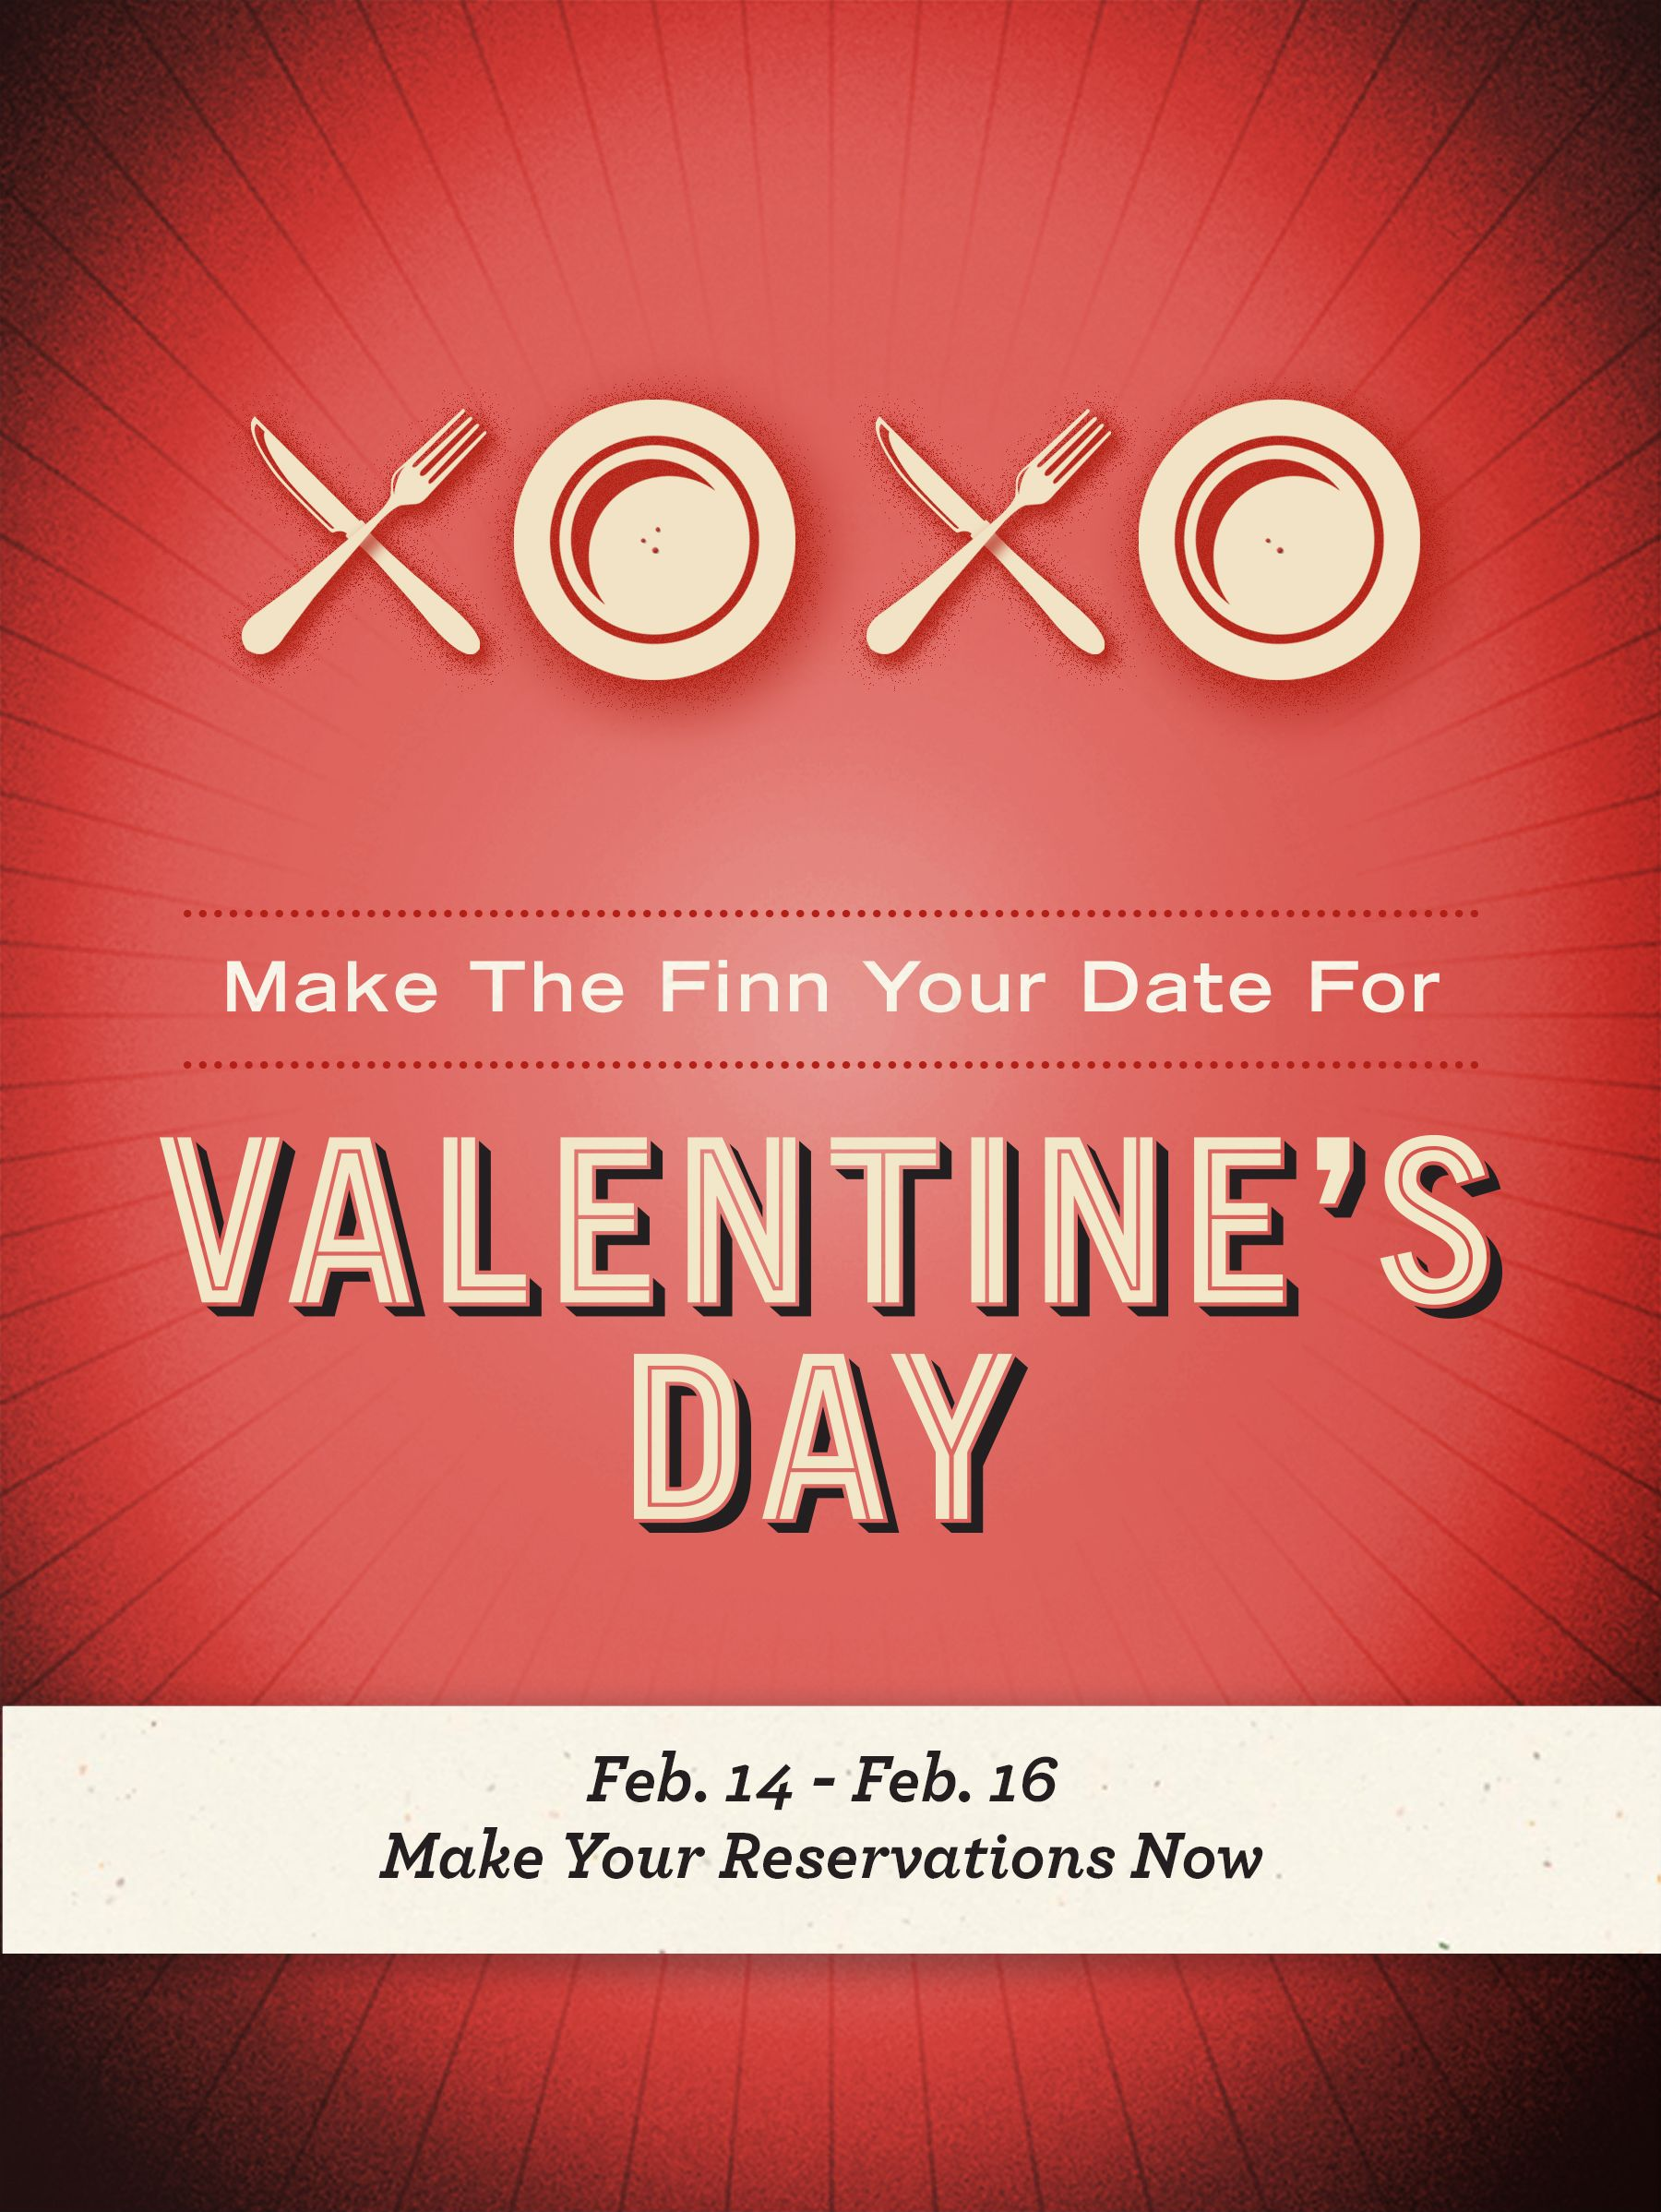 valentines day promotion ideas for restaurants google search - Valentine Day Restaurant Promotions